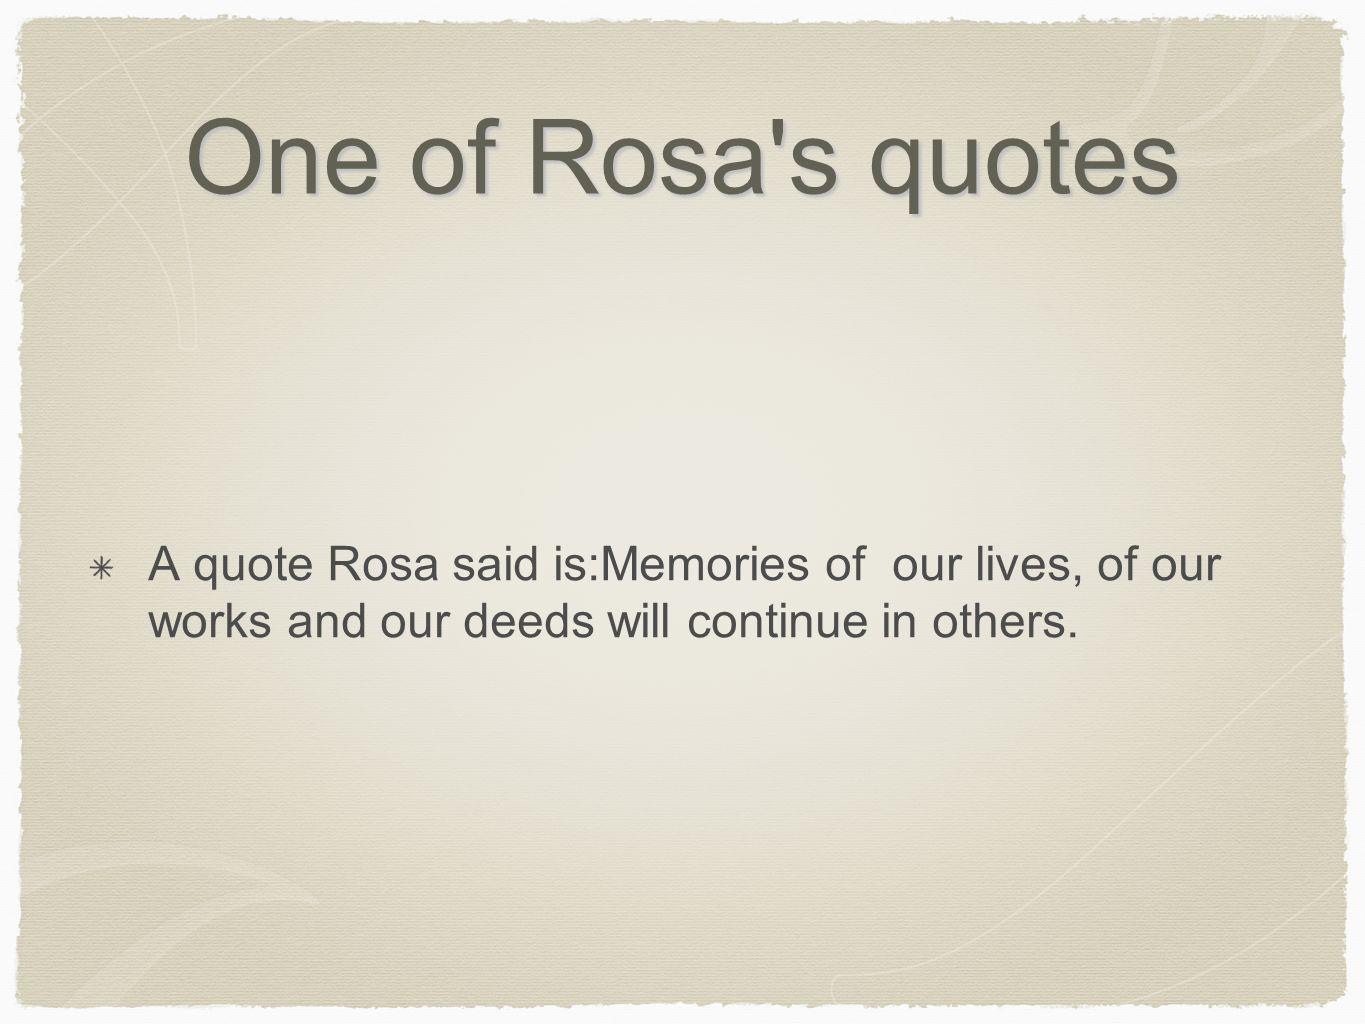 One of Rosa s quotes A quote Rosa said is:Memories of our lives, of our works and our deeds will continue in others.